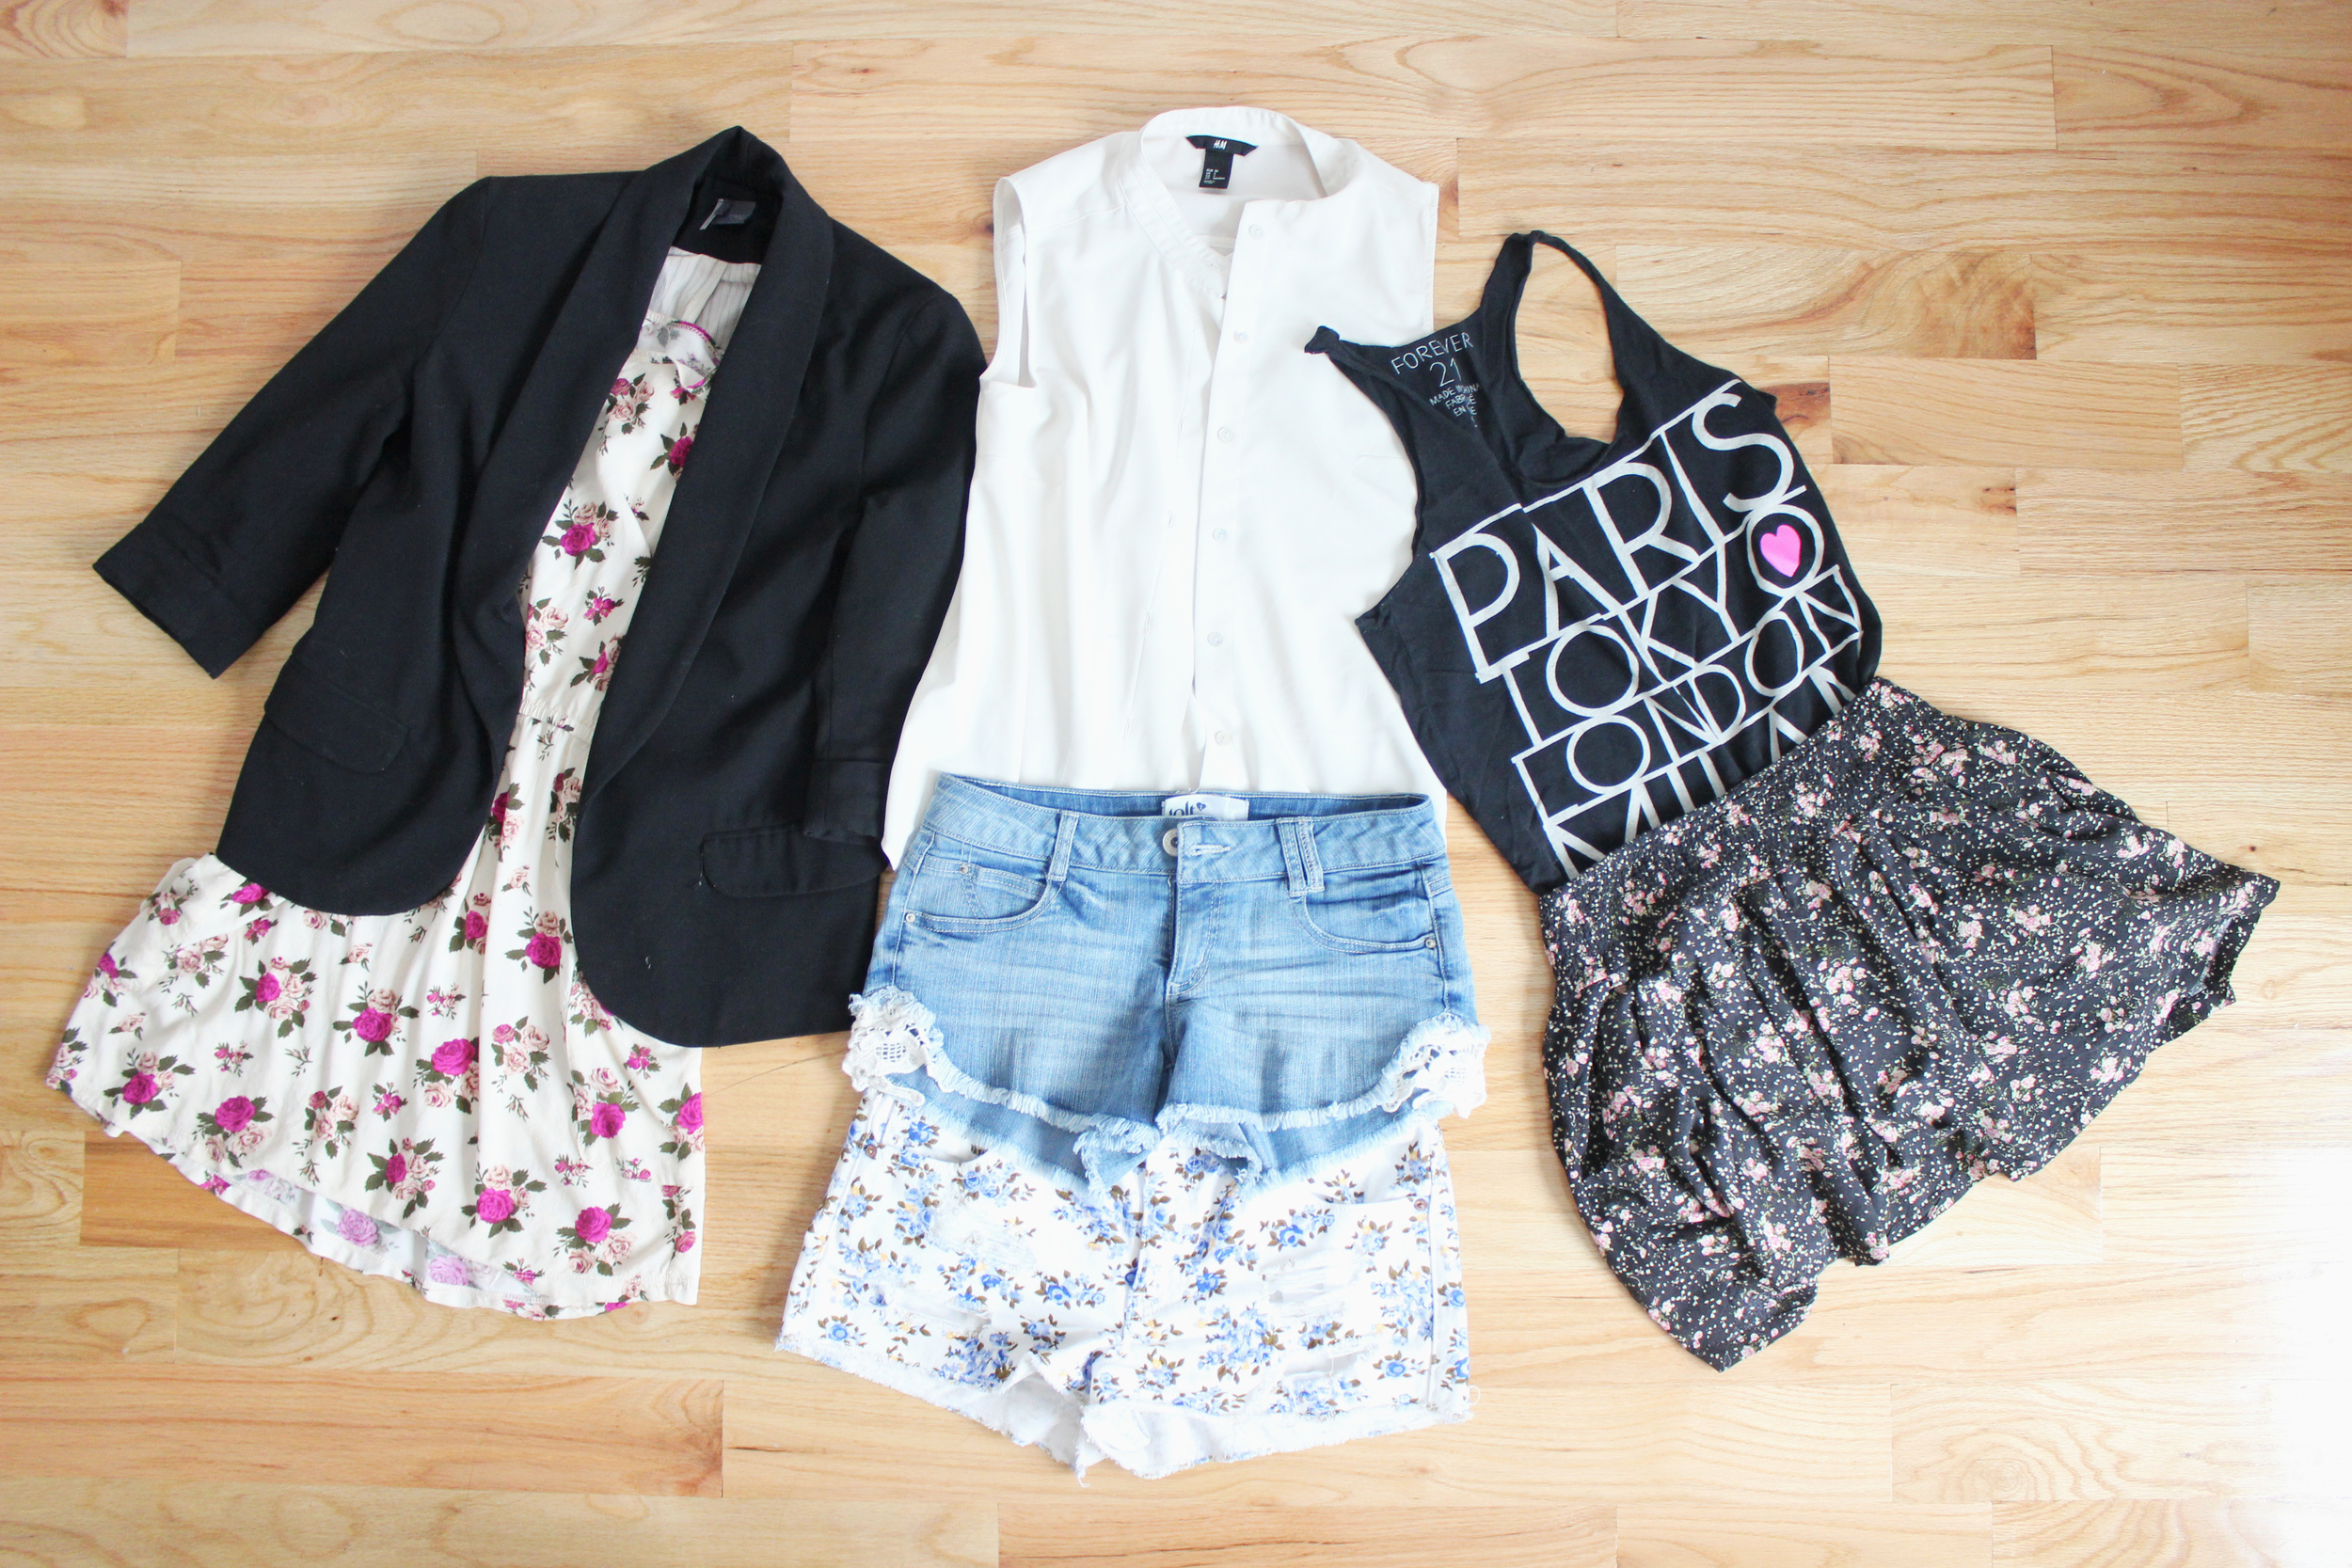 Outfits to mix and match